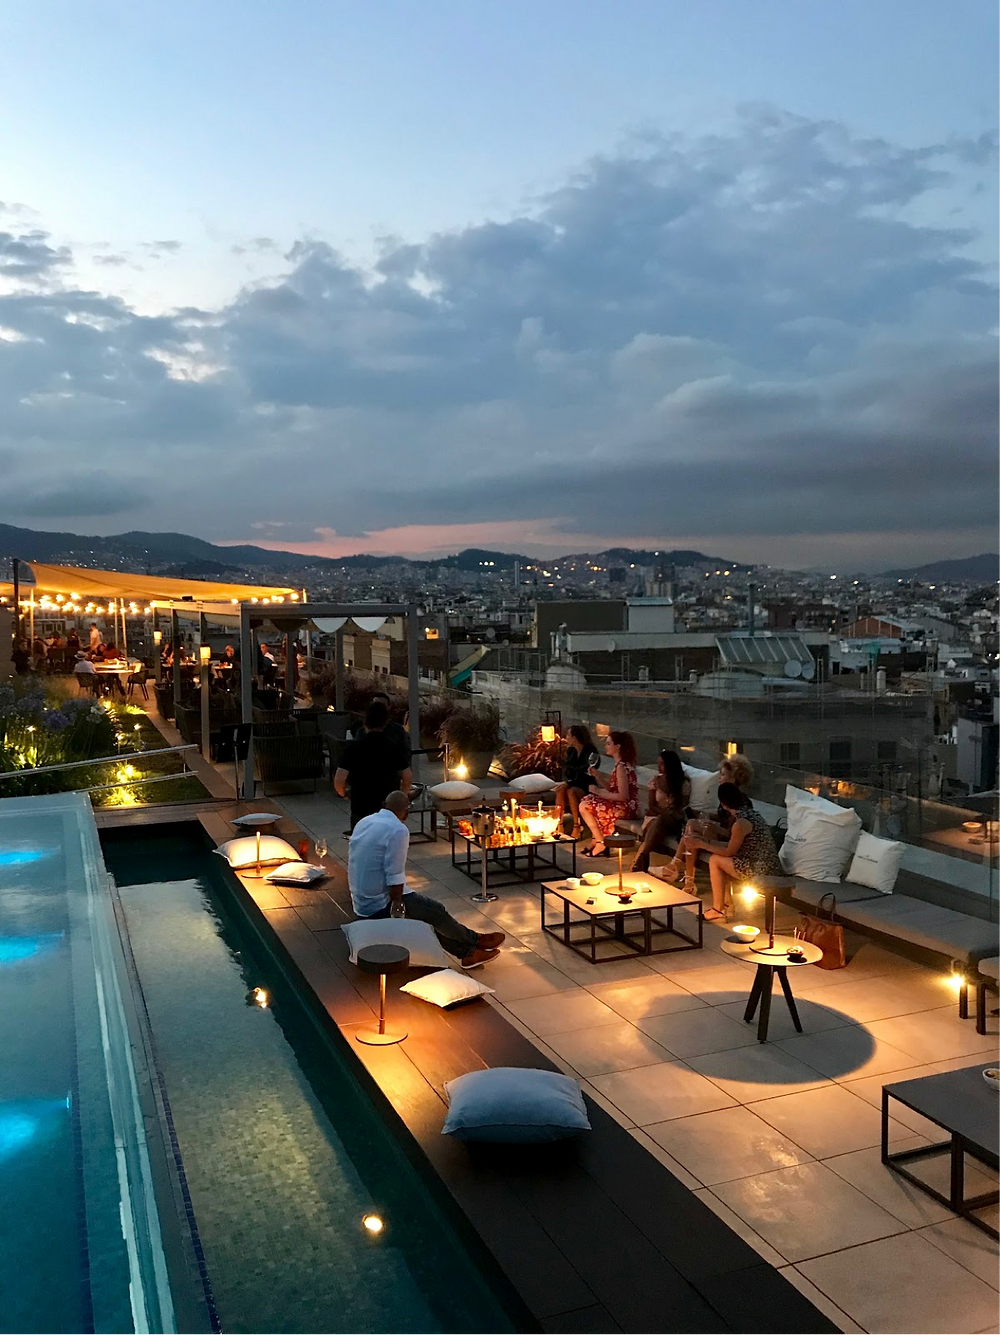 event barcelona rooftop drinks sunset party